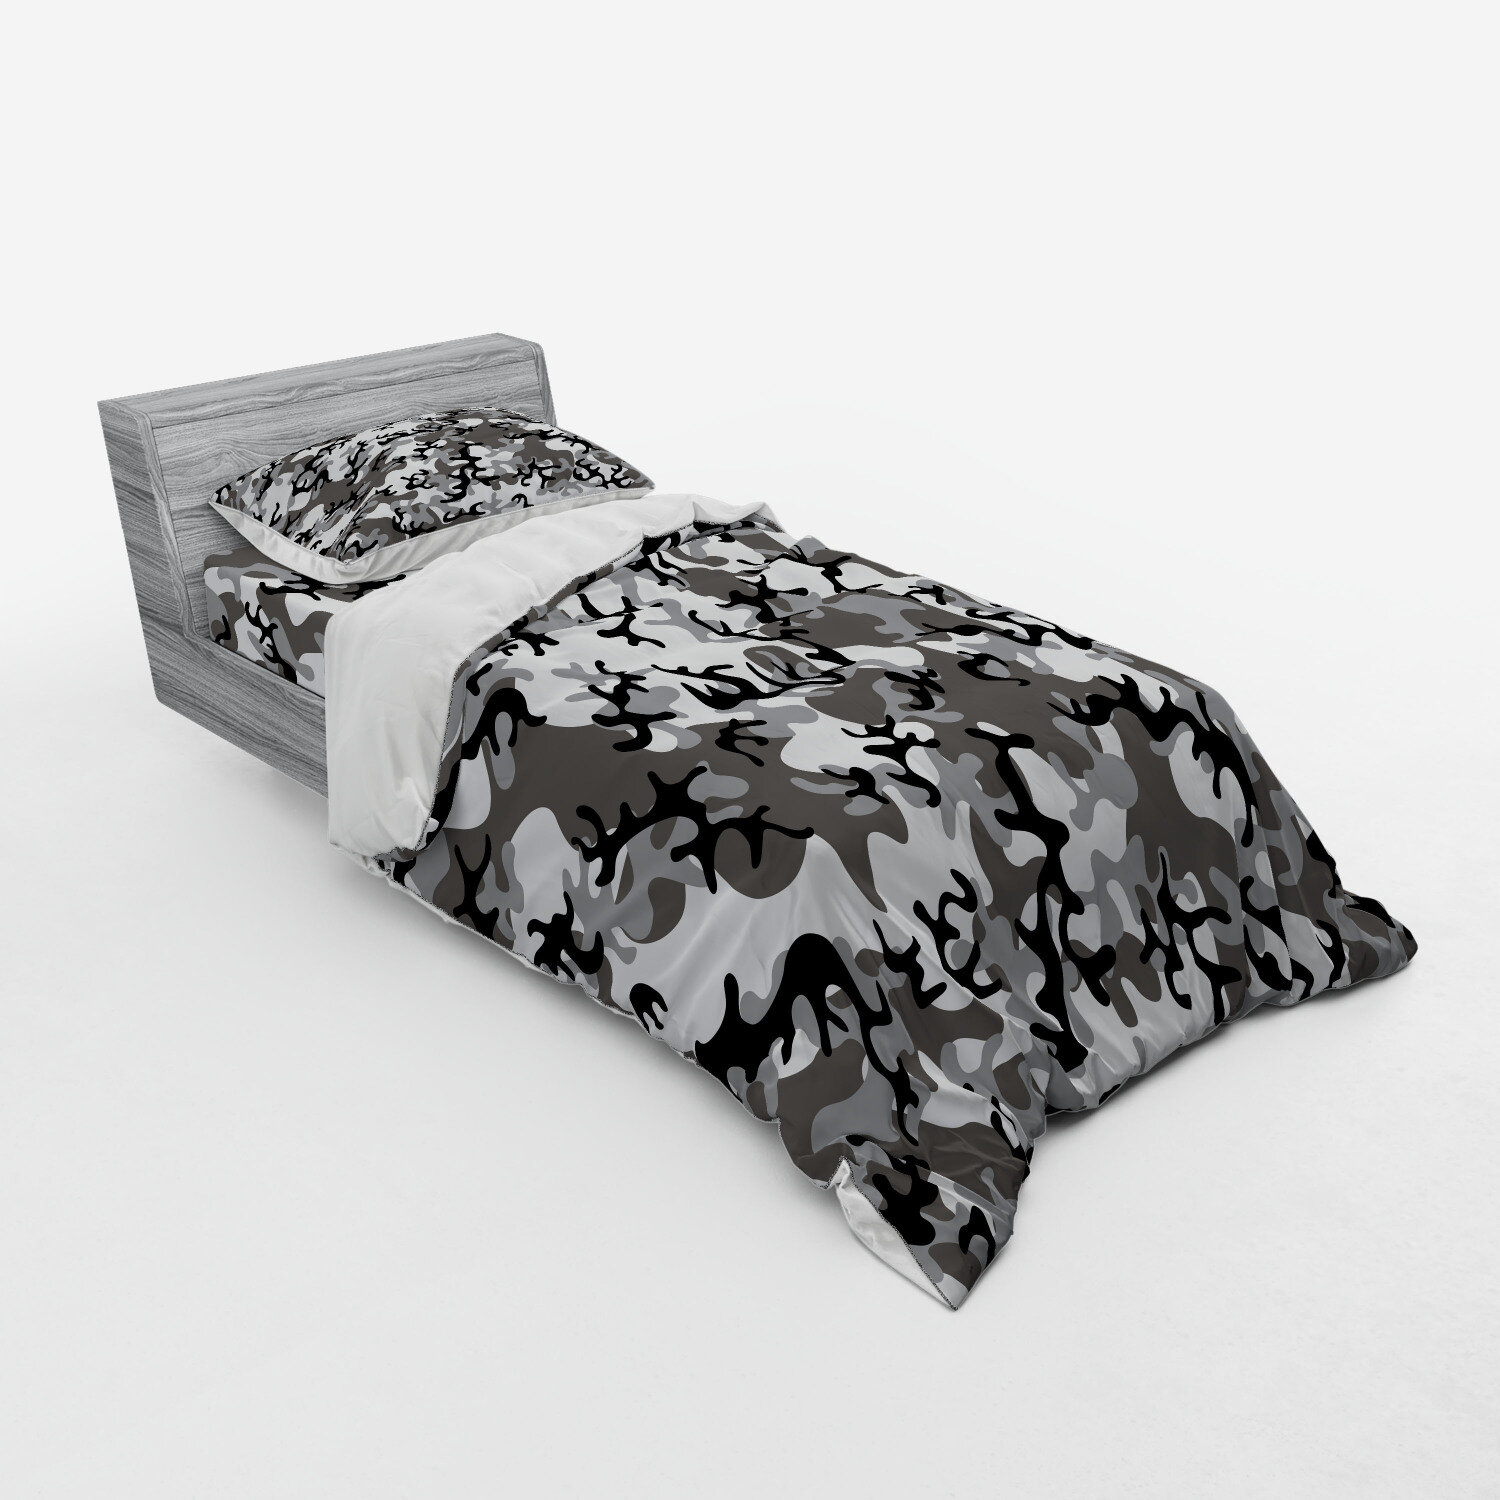 Camouflage Duvet Bedding You Ll Love In 2021 Wayfair